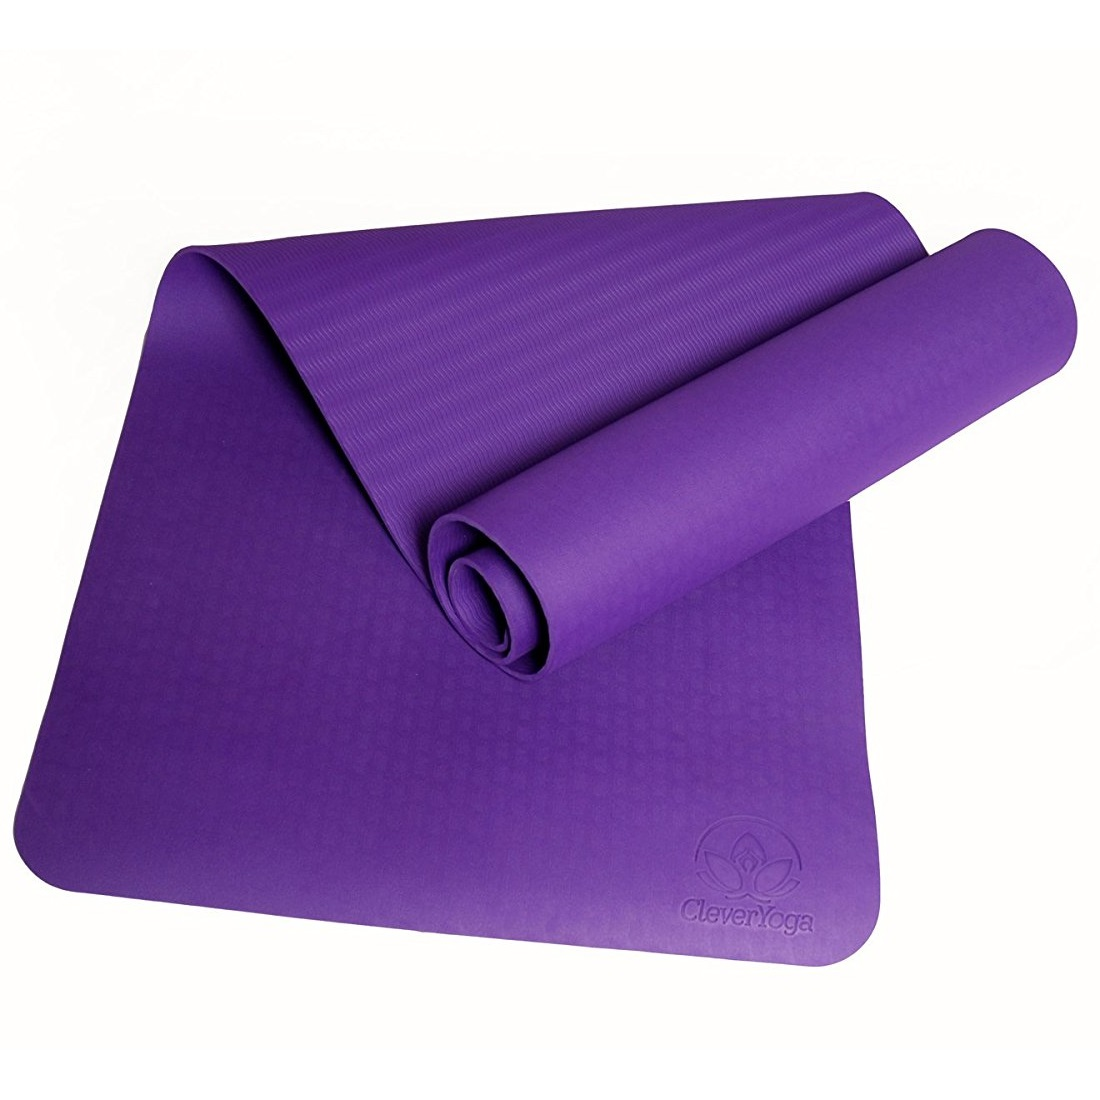 "clever yoga premium bettergrip tpe 1/4"" thick purple yoga mat"